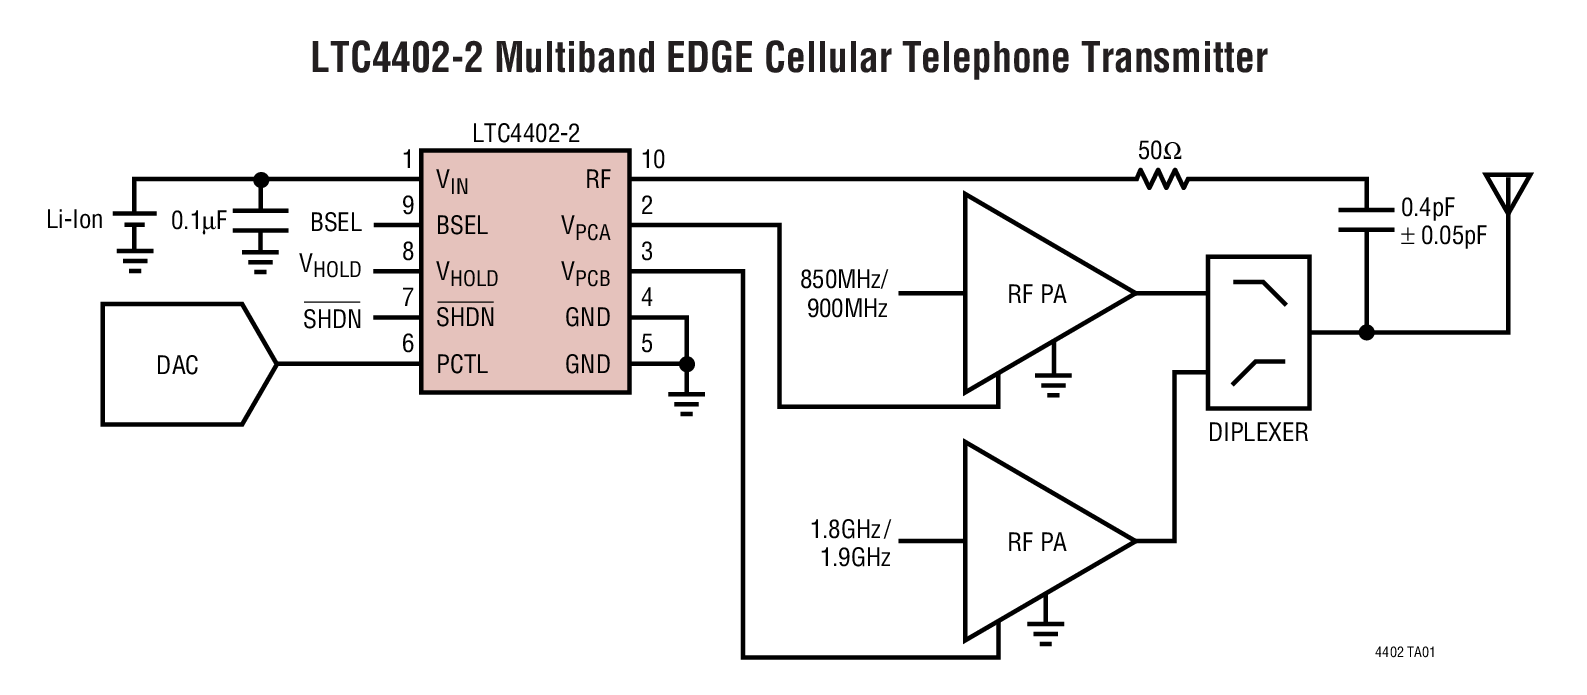 LTC4402 Multiband RF Power Controllers for EDGE/TDMA